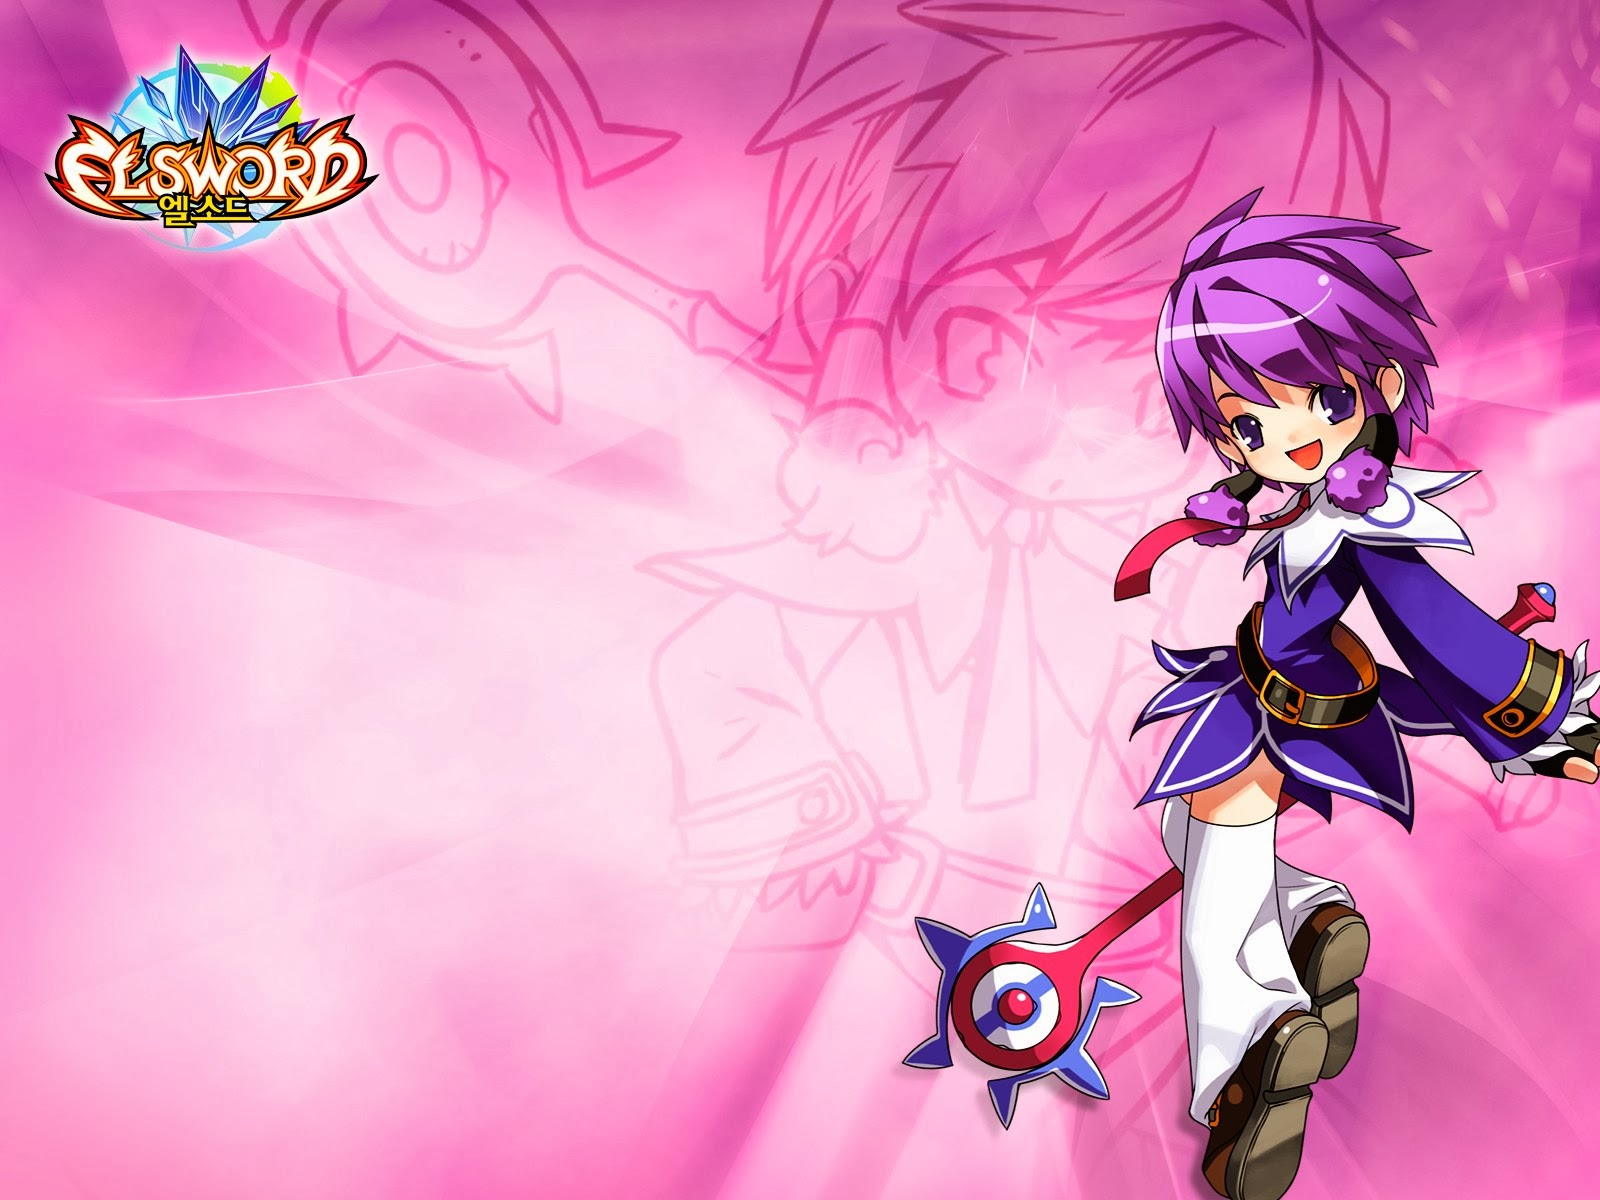 KamiNoBeniMizu Online Games: Elsword Aisha Wallpapers: www.rachaeledwards.com/focus/best-flash-games-2013.html